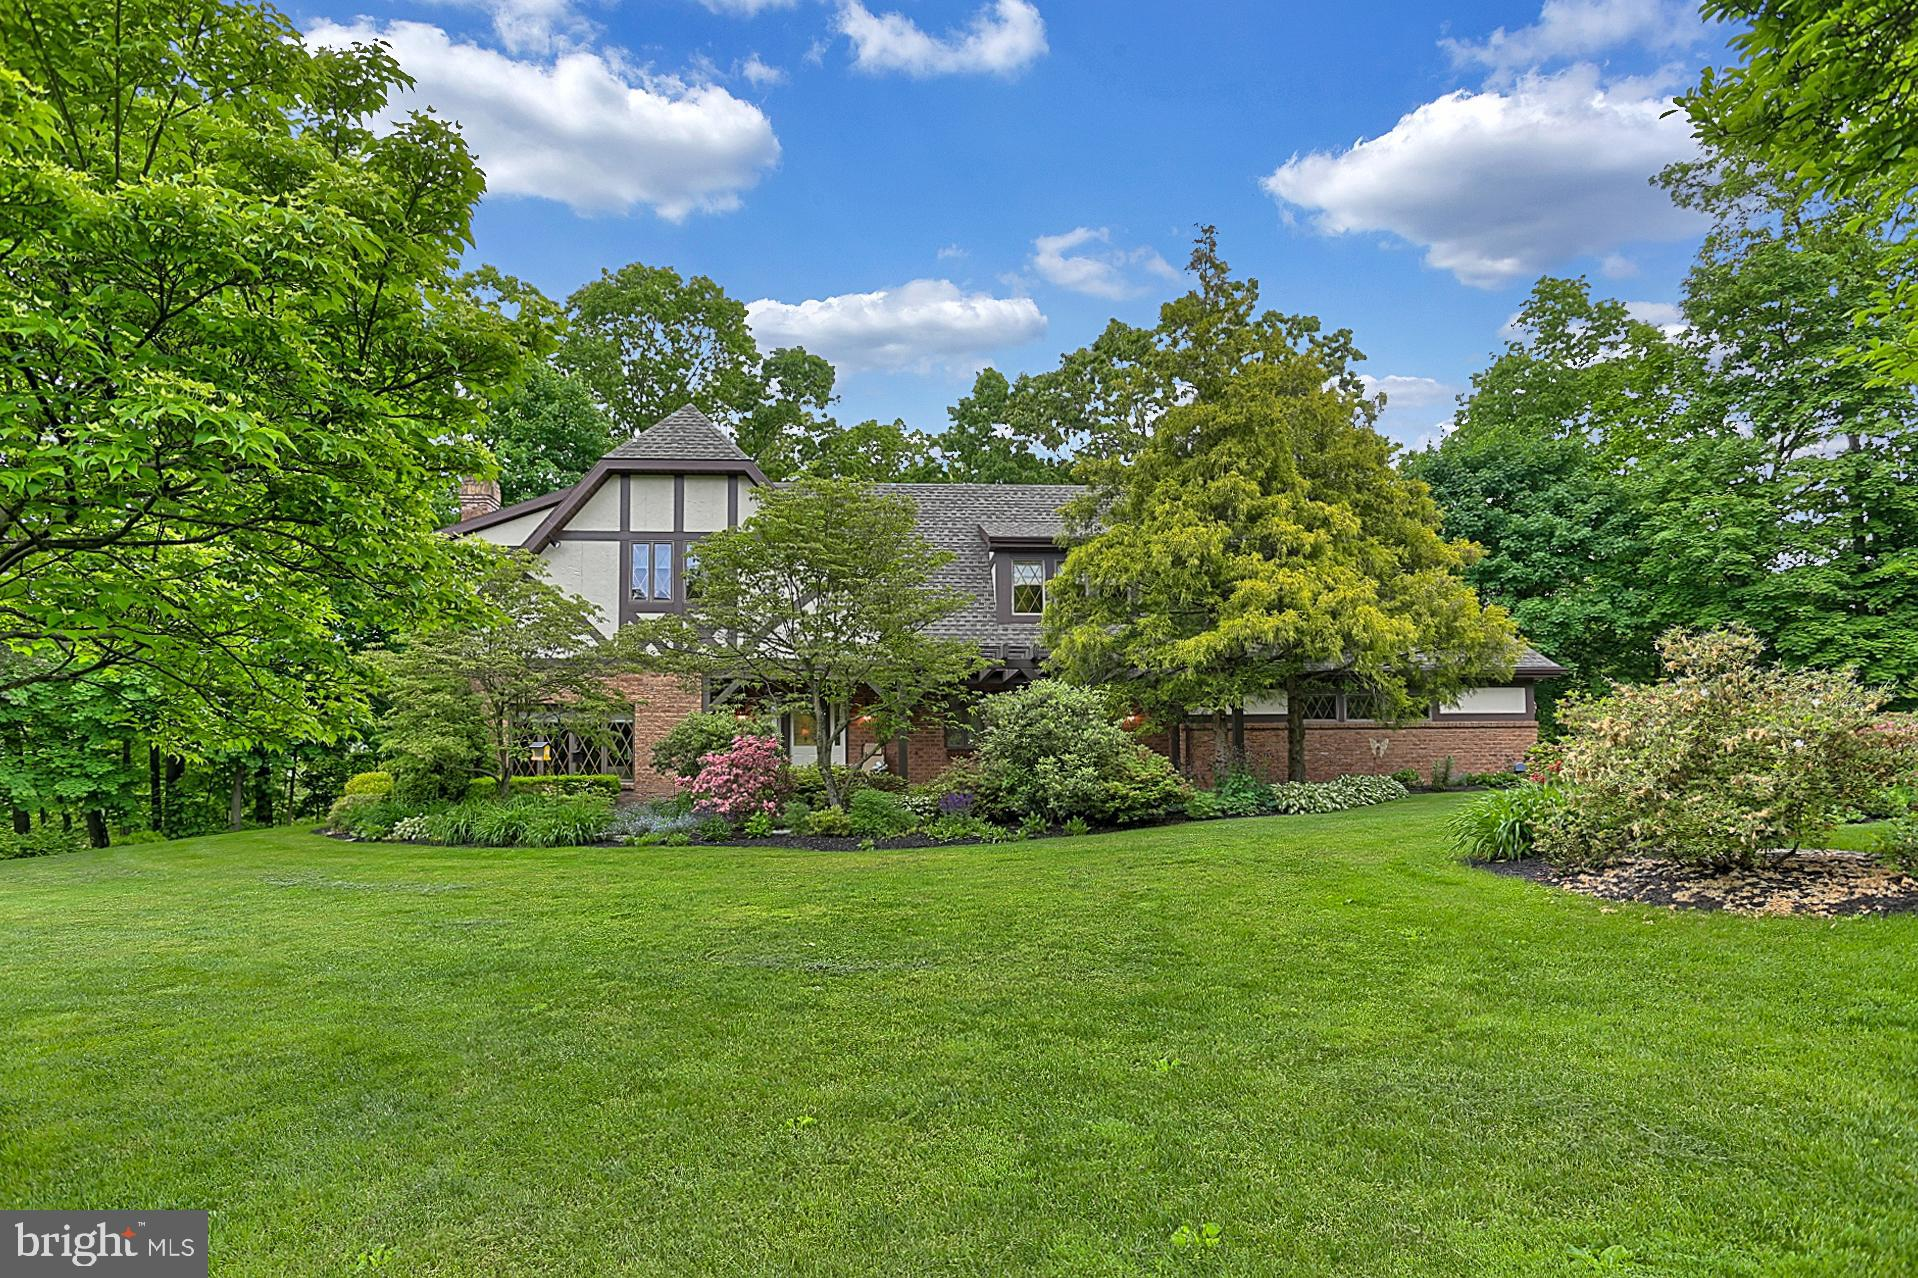 406 OLD MILL ROAD, NEW OXFORD, PA 17350